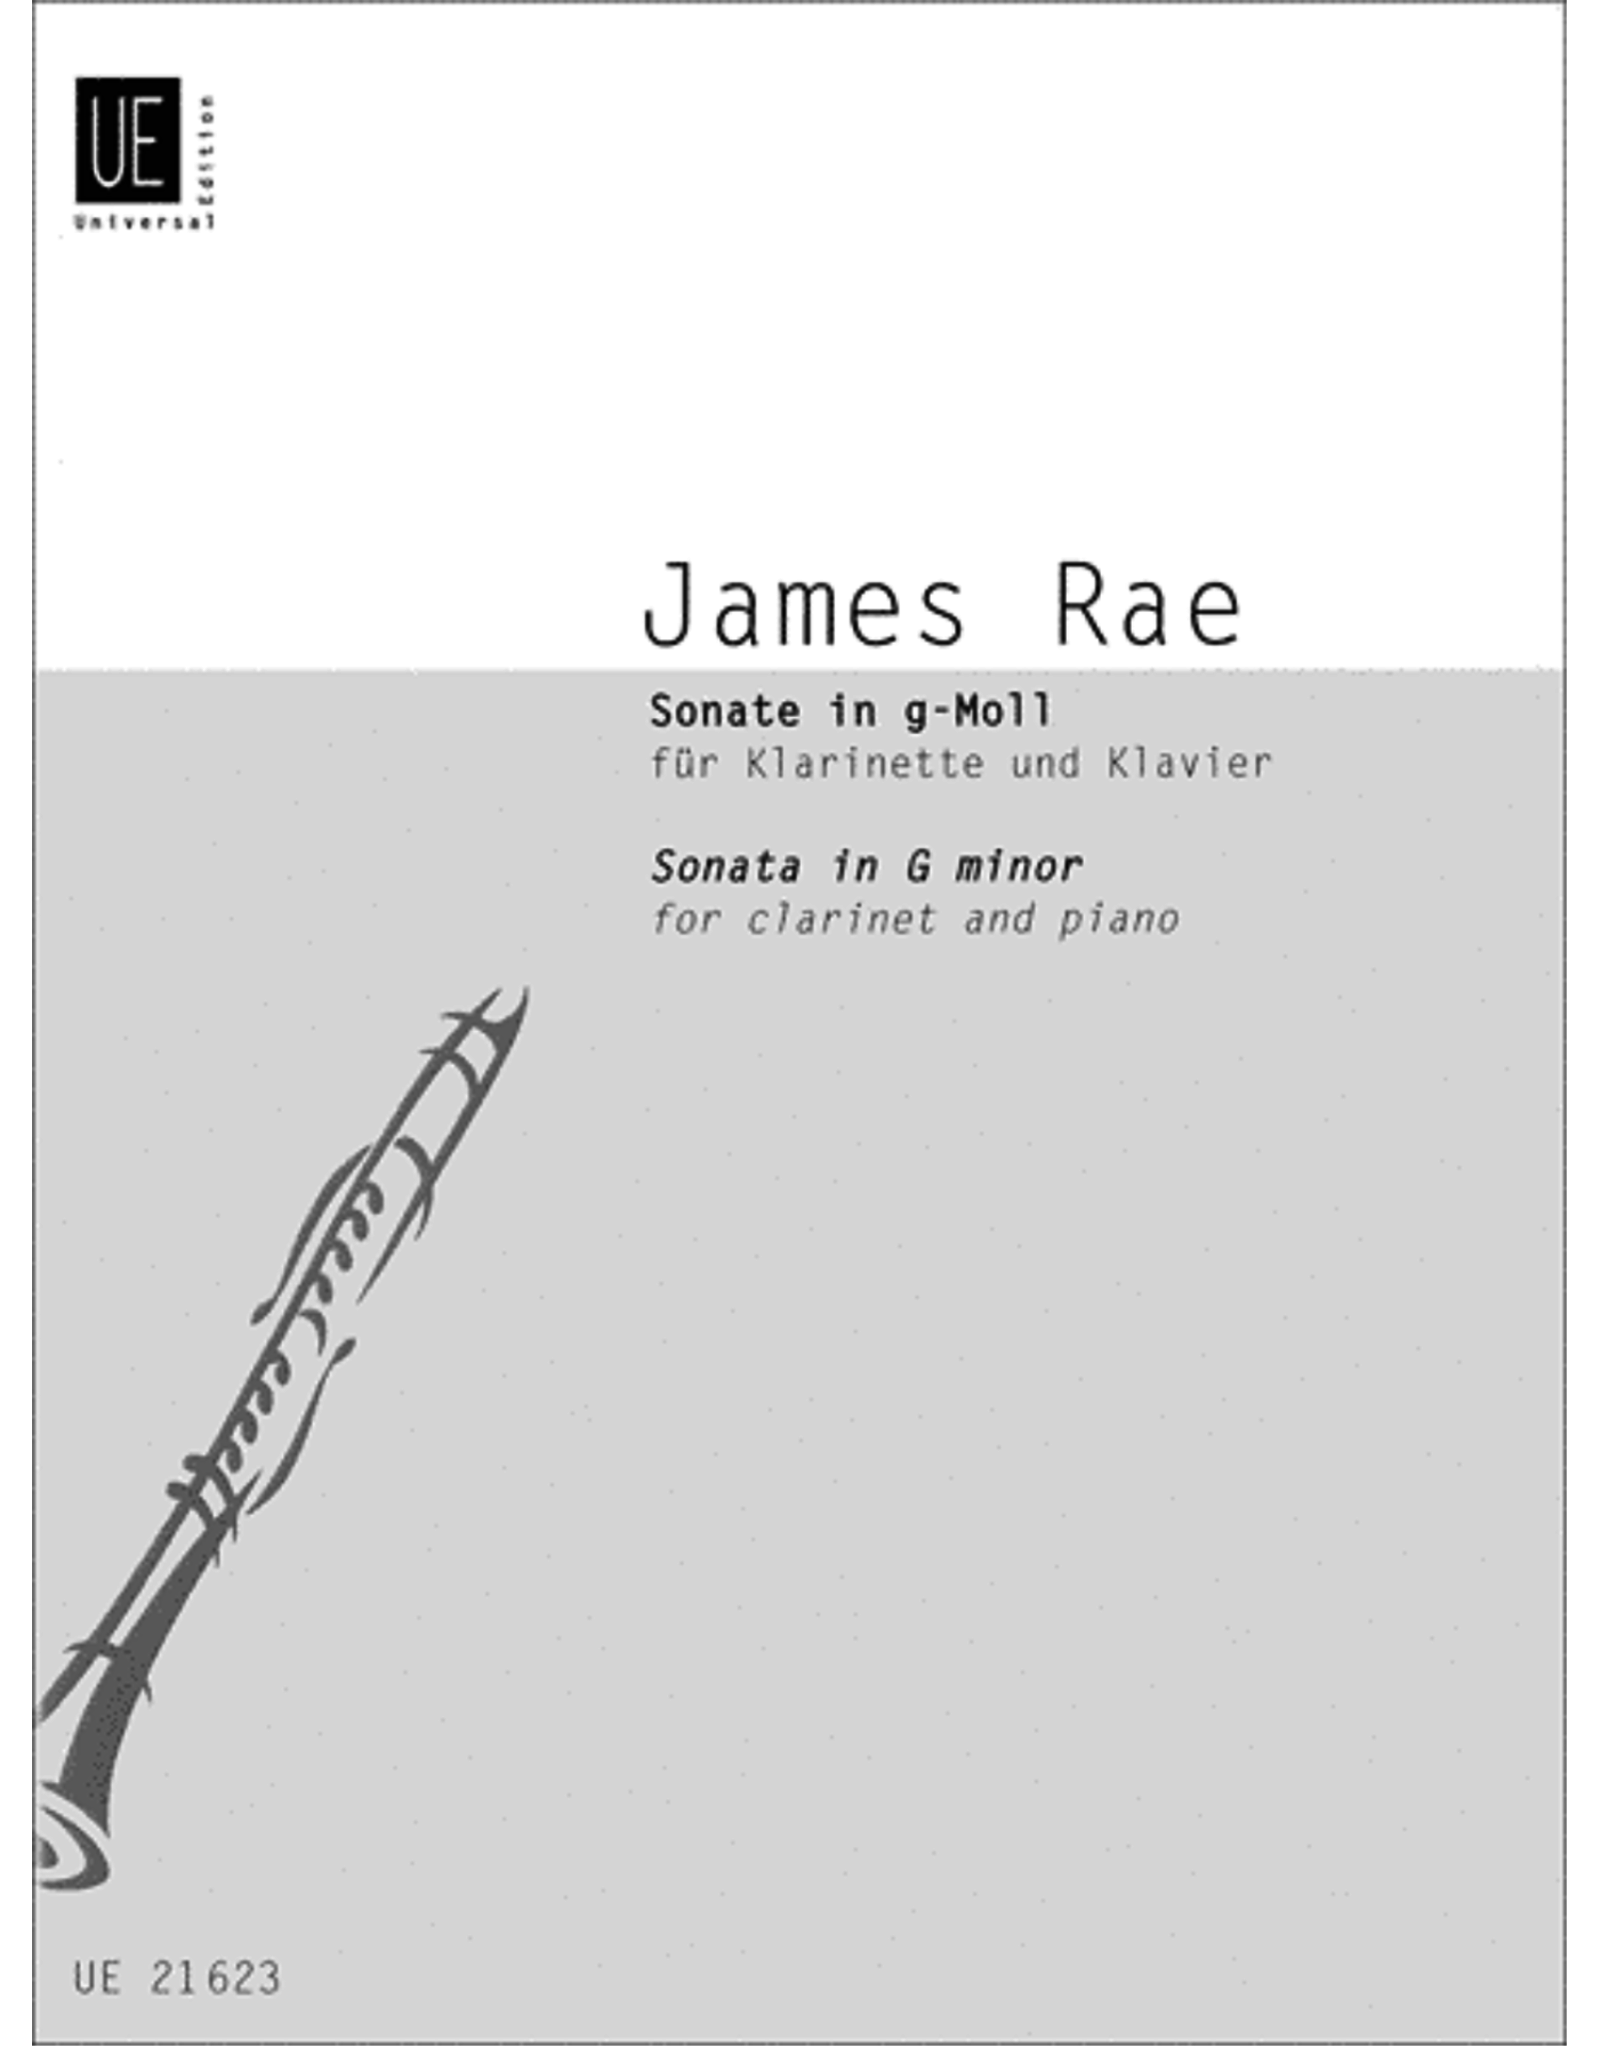 UNIVERSAL EDITION Rae - Sonata in G minor for clarinet and piano